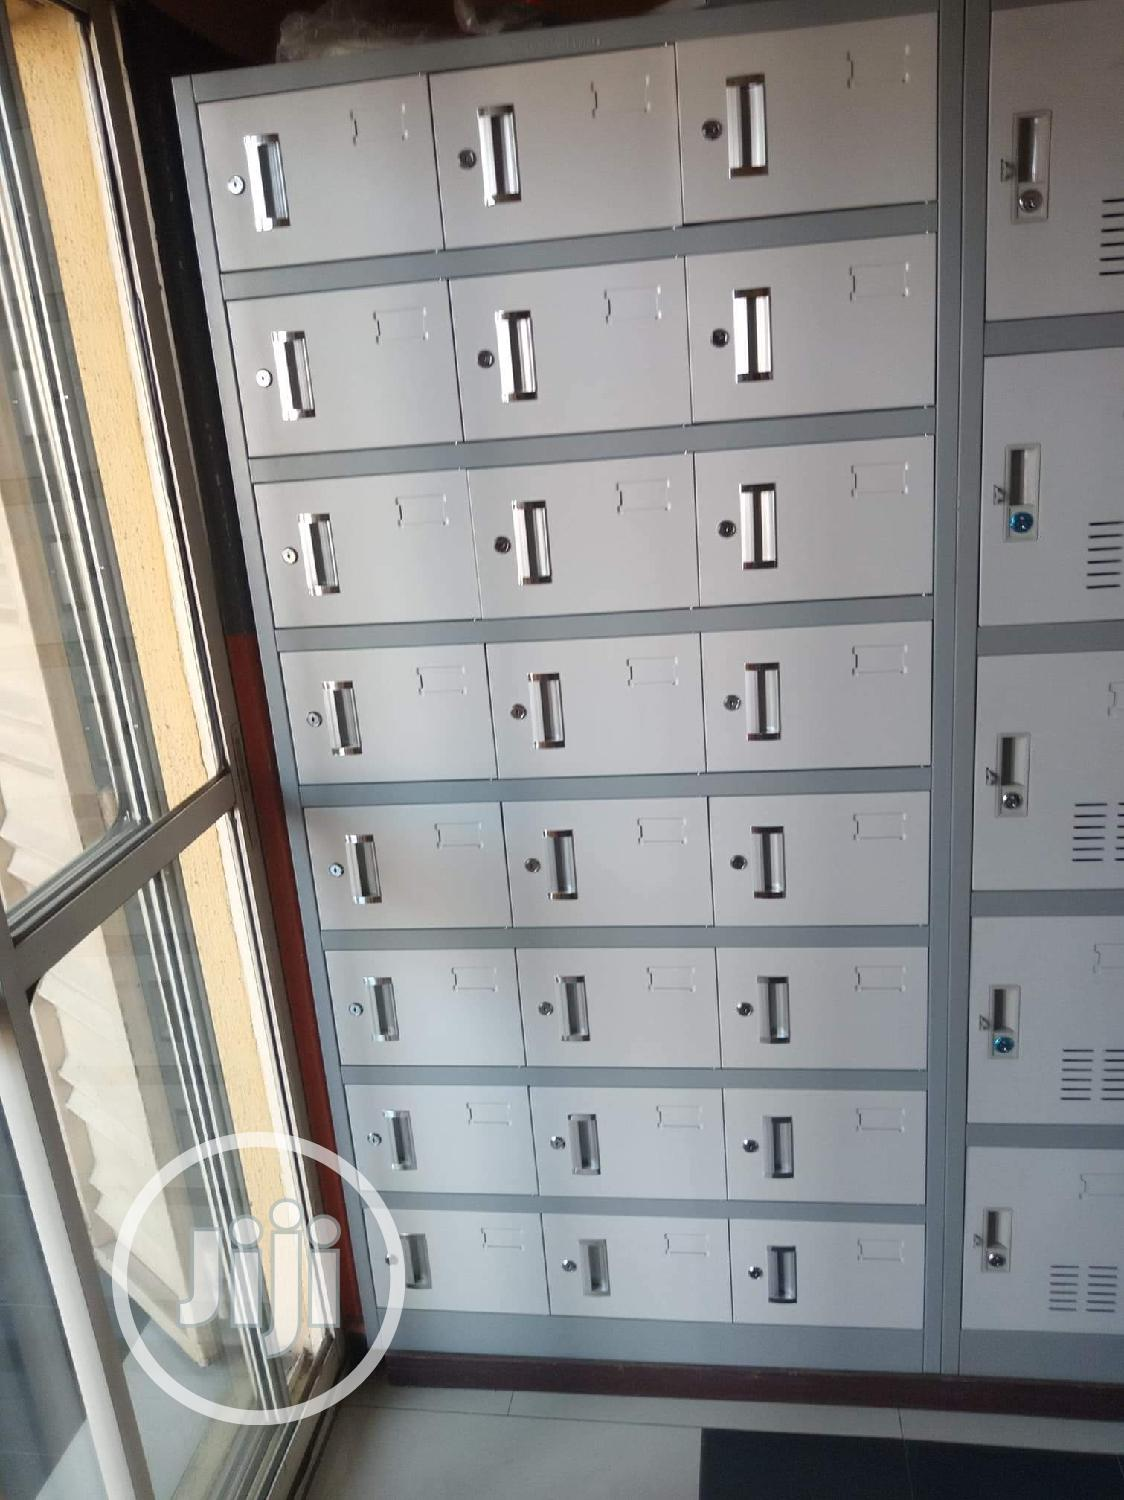 Archive: Workers Locker for Offices